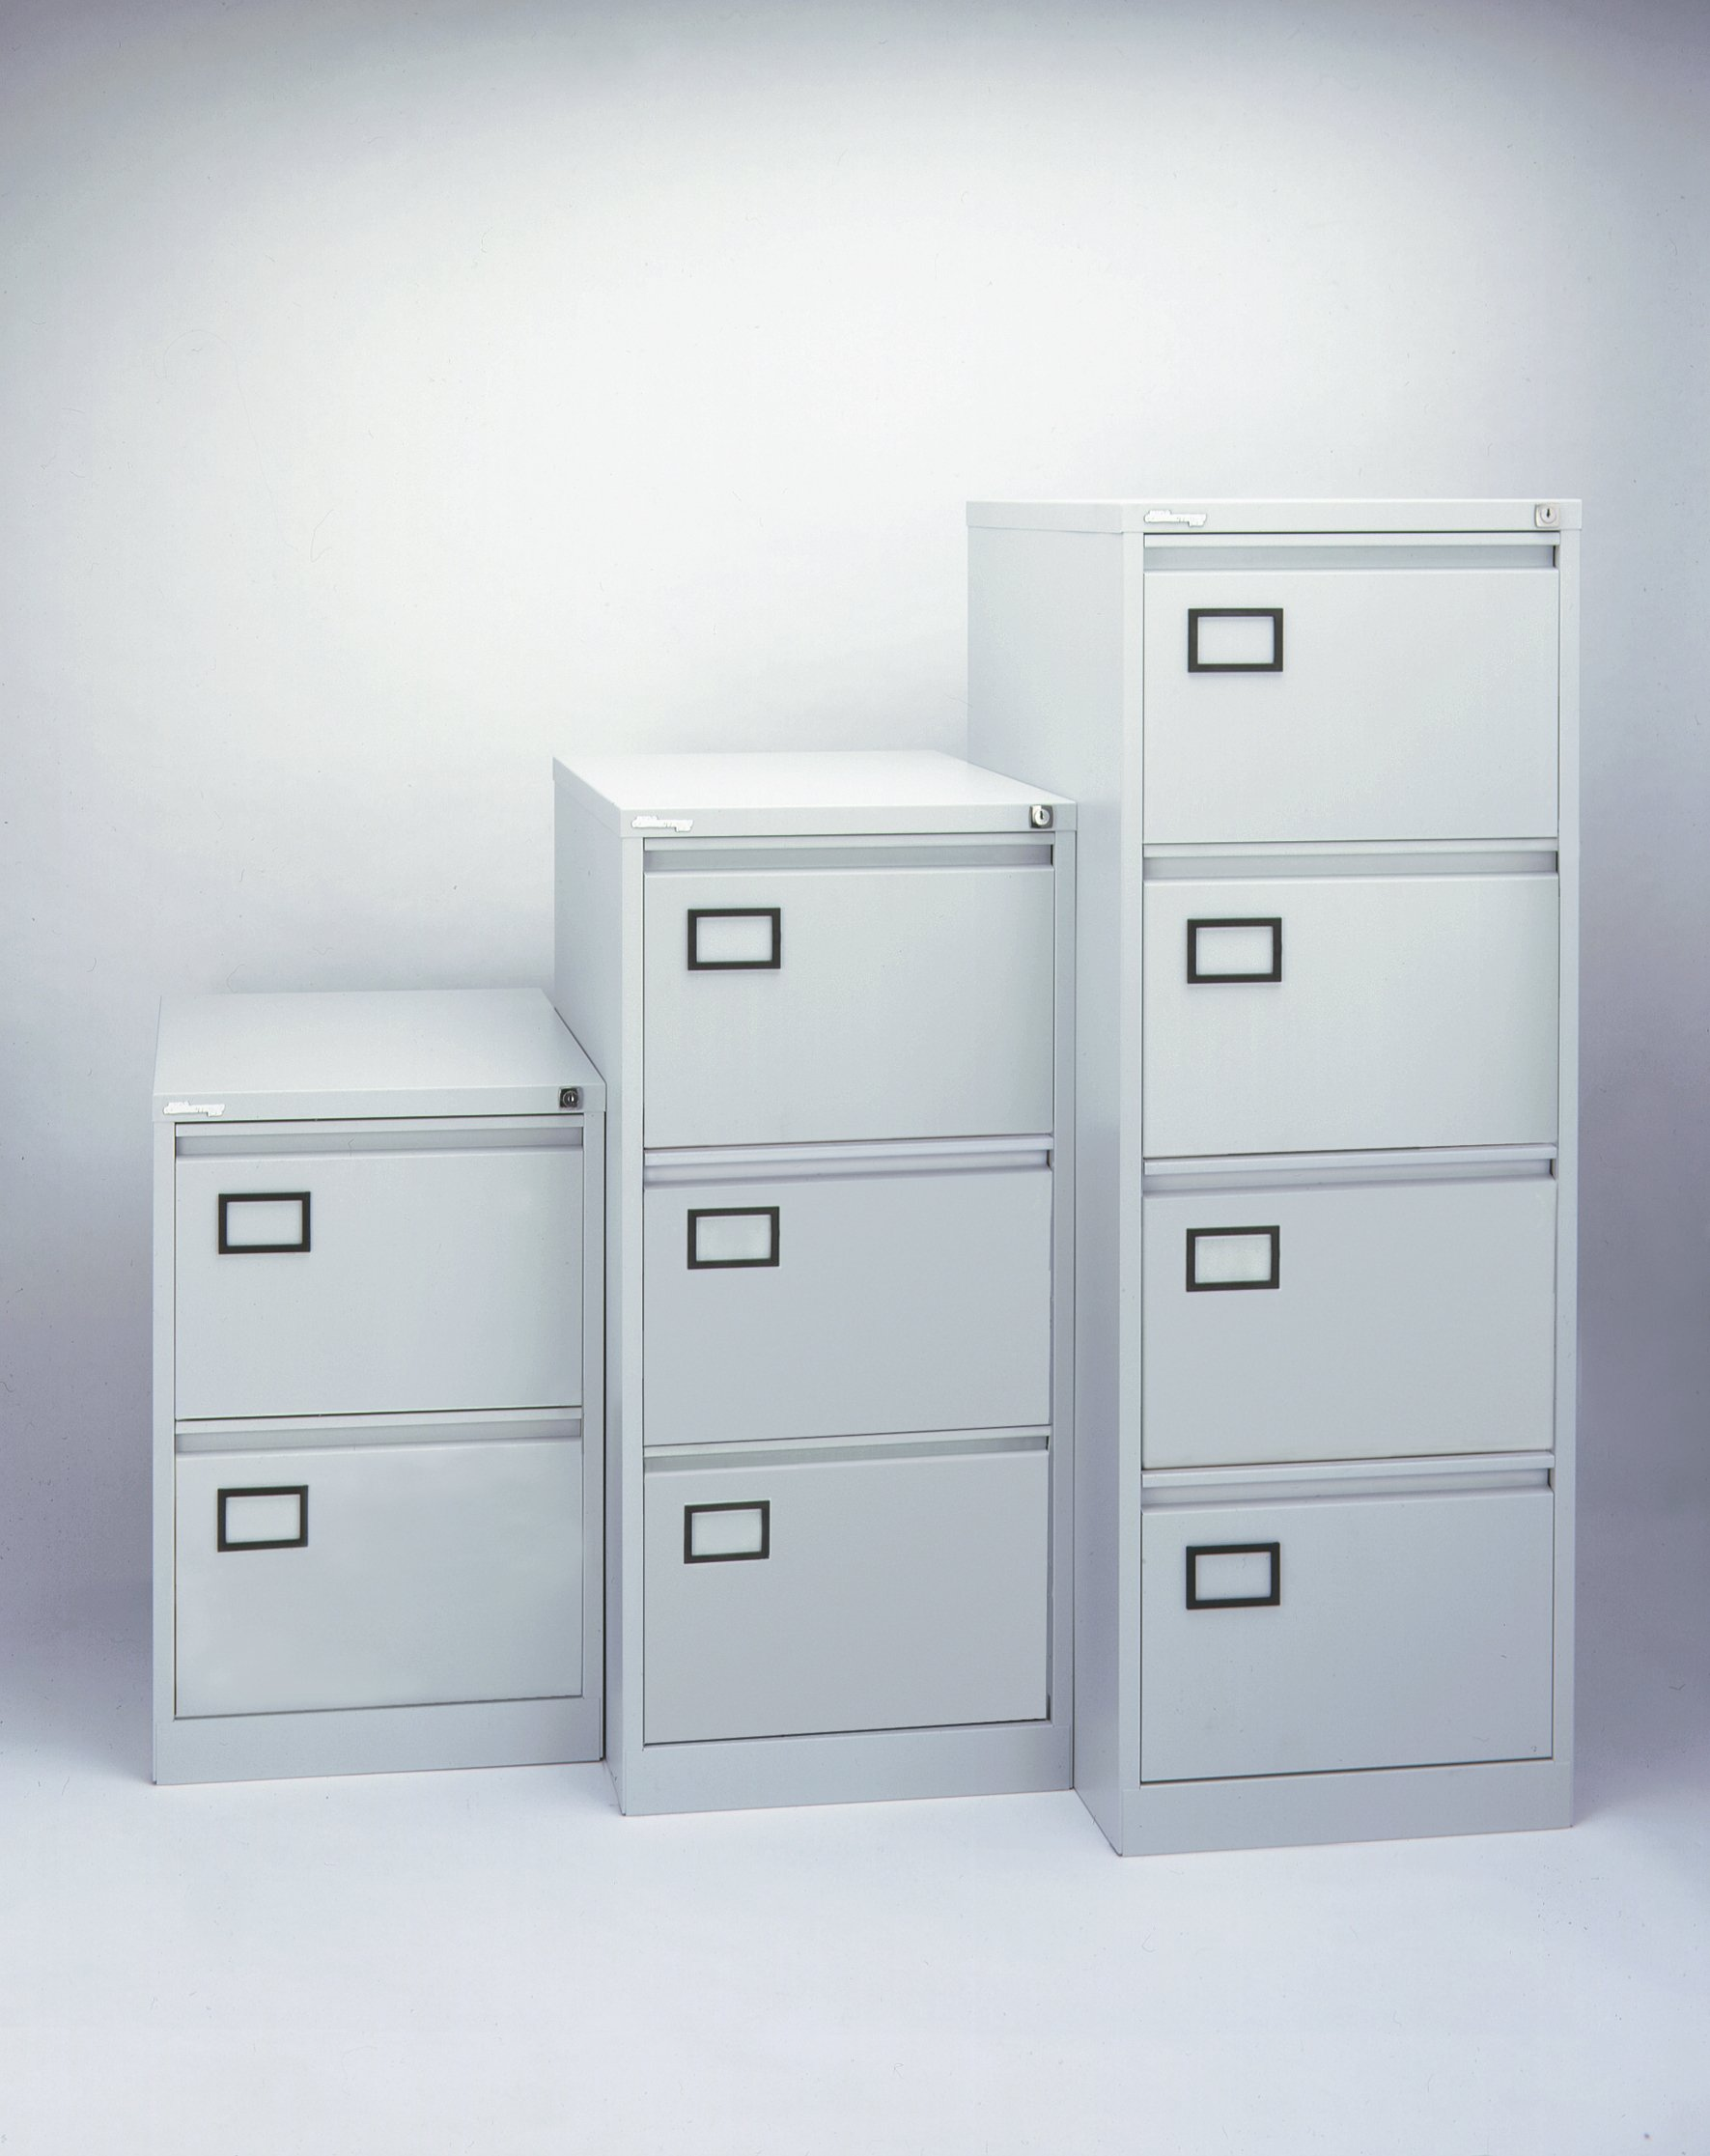 Metal or wood finish filing cabinets - Withy Grove Stores Ltd, Manchester City Centre - Withy Grove Stores Ltd